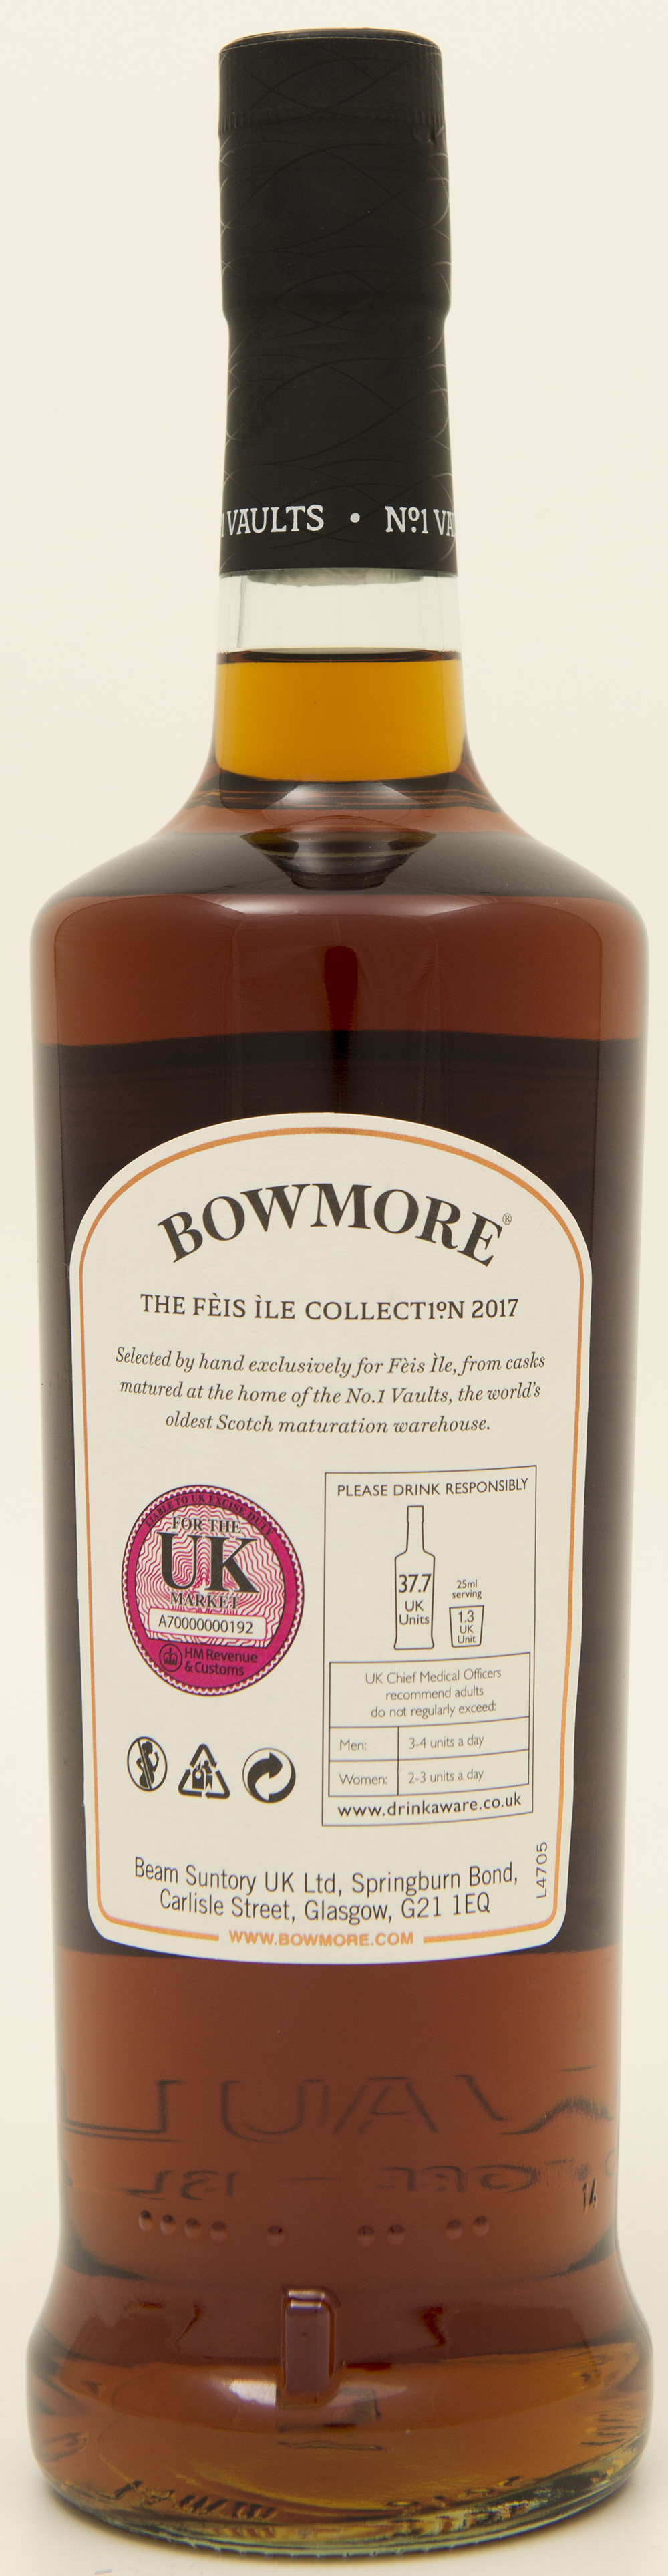 Billede: DSC_3218 - Bowmore 11 - Feis Isle 2017 - bottle back.jpg